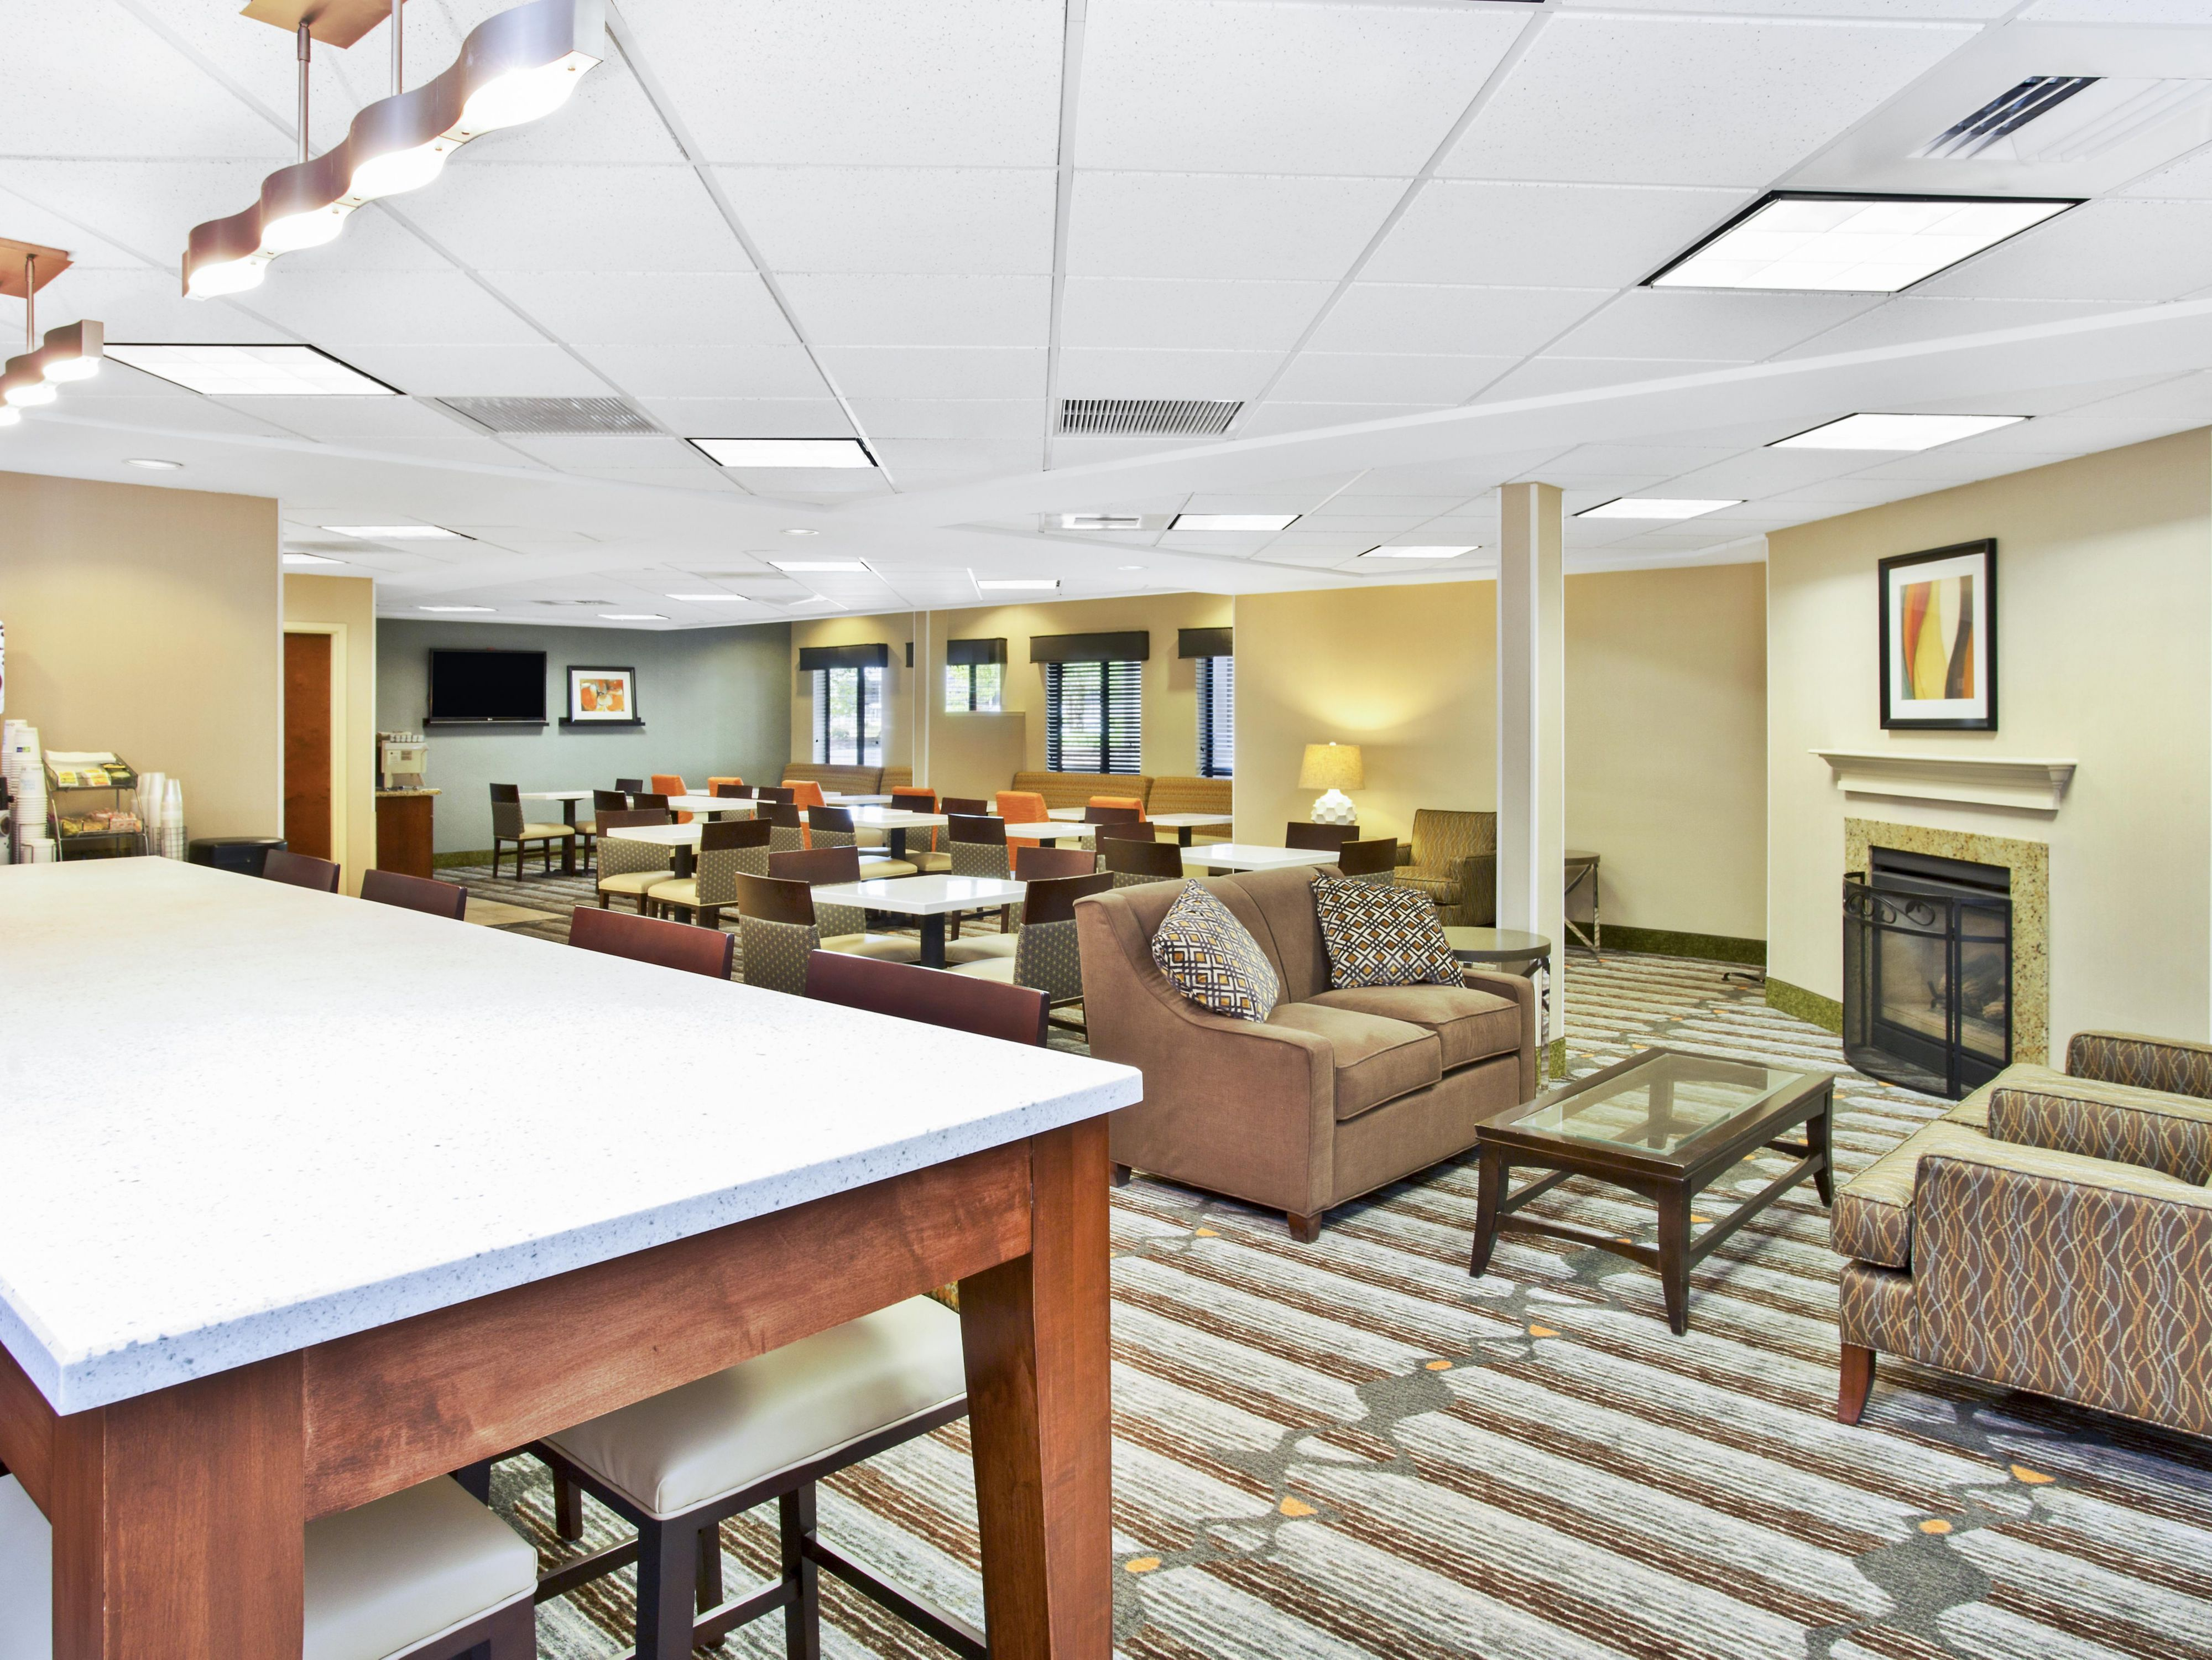 Holiday Inn Express & Suites Bradley Lobby & Community Table